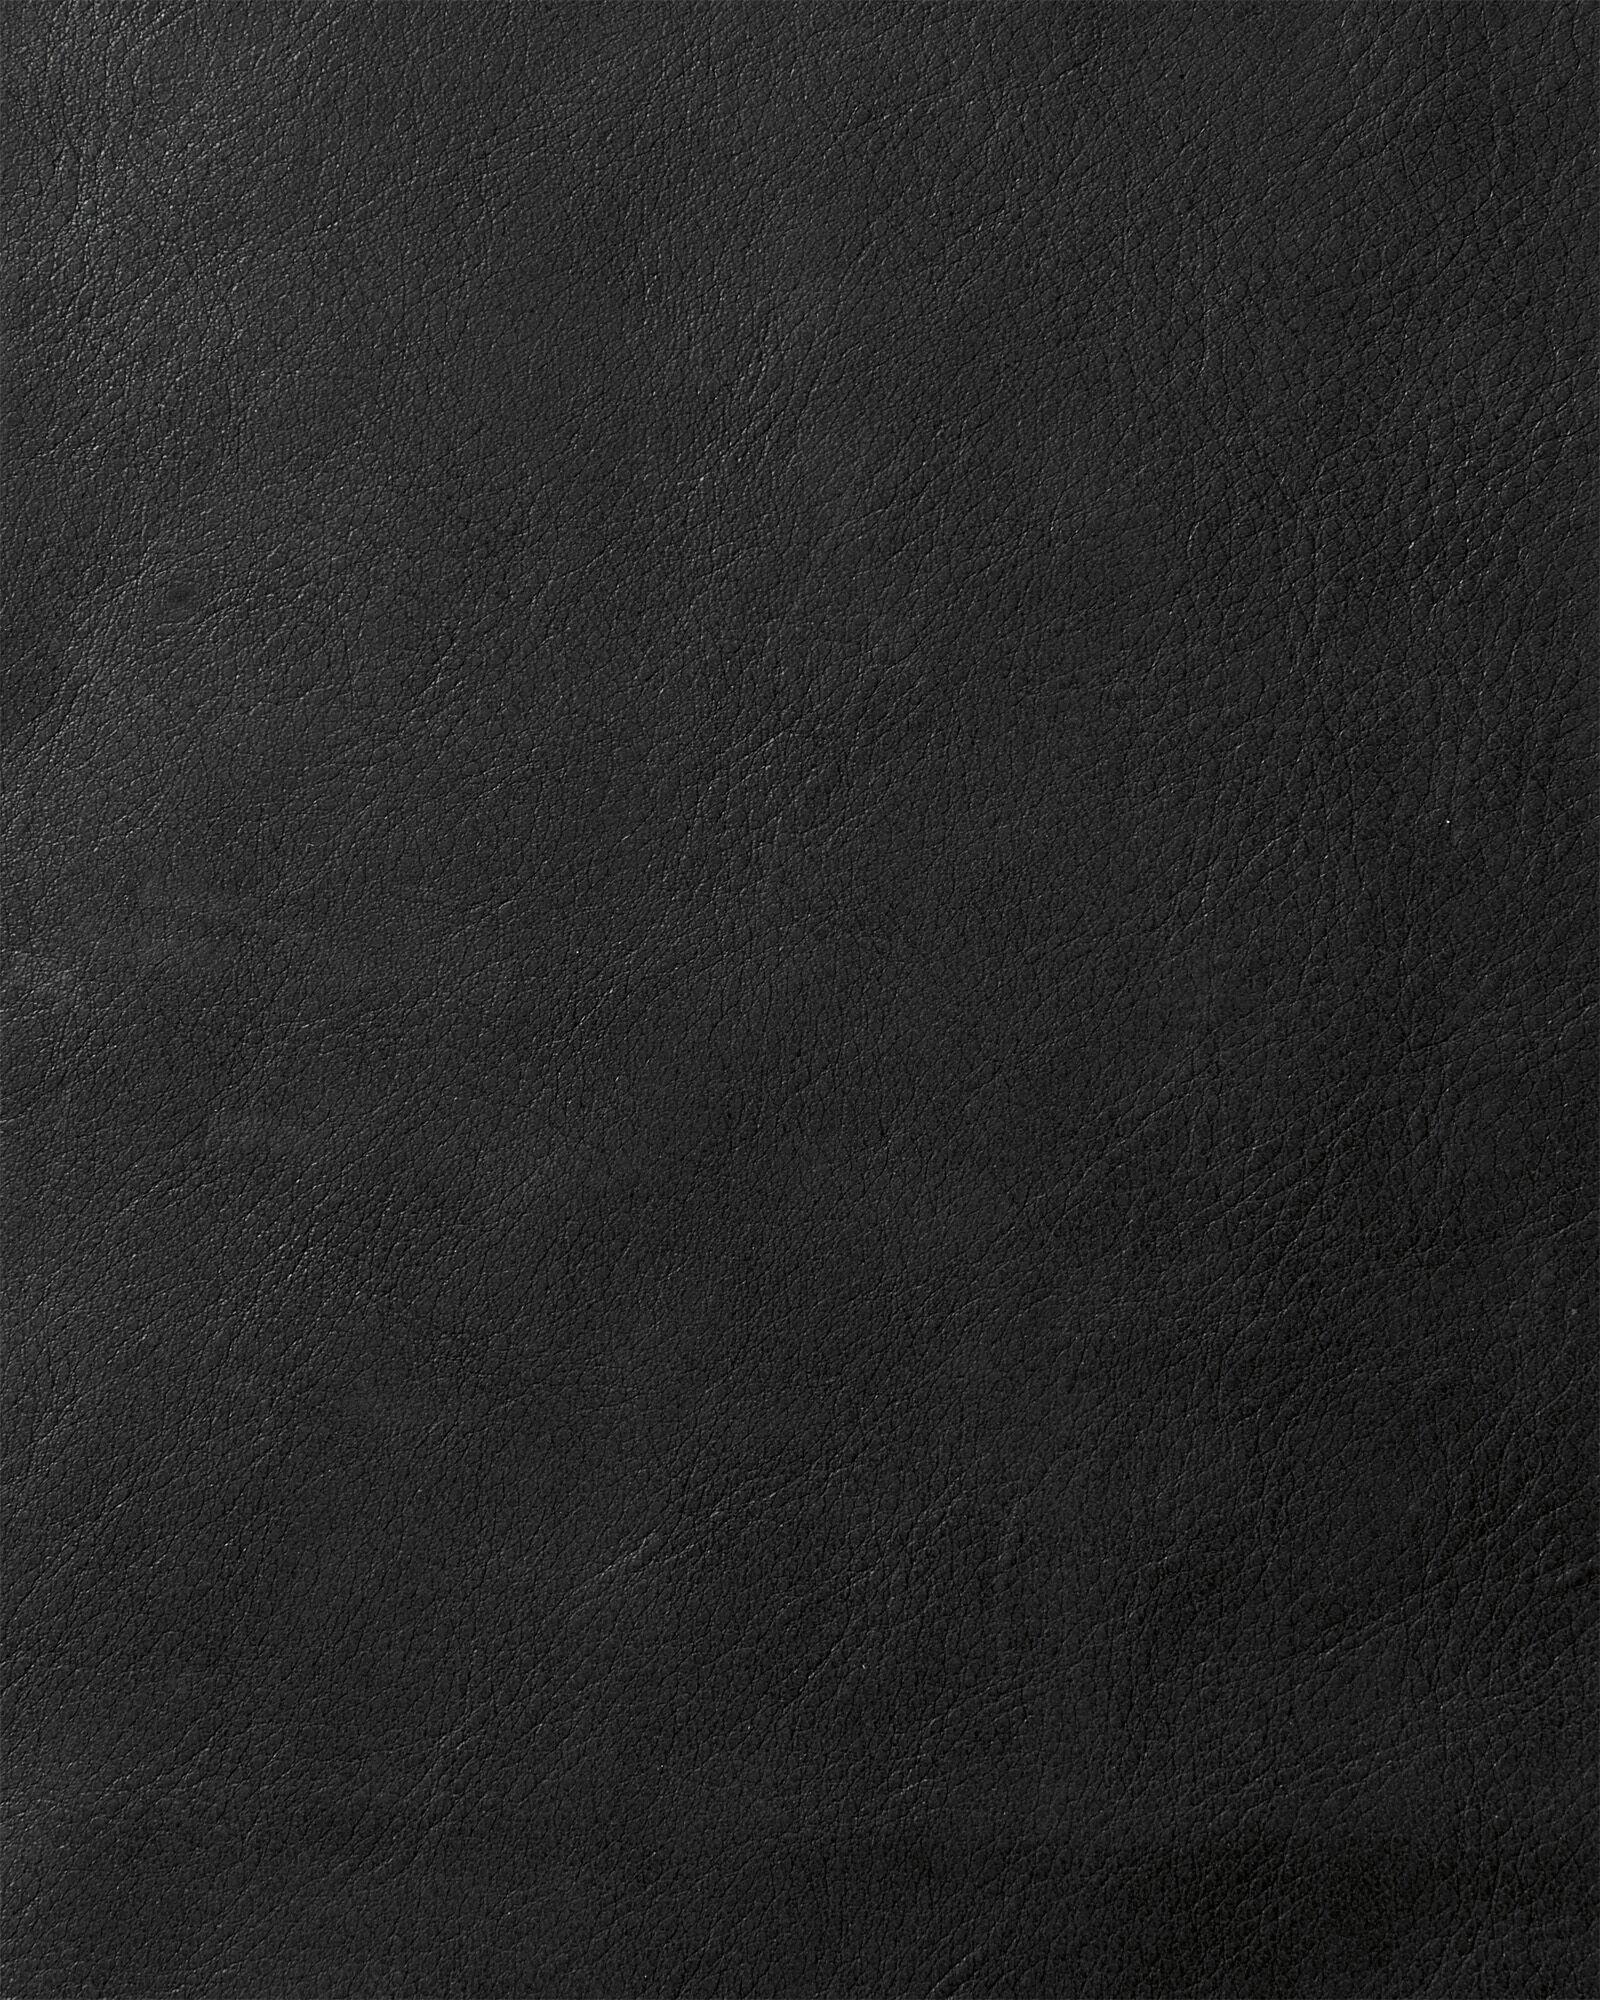 Luxe Leather - Black,